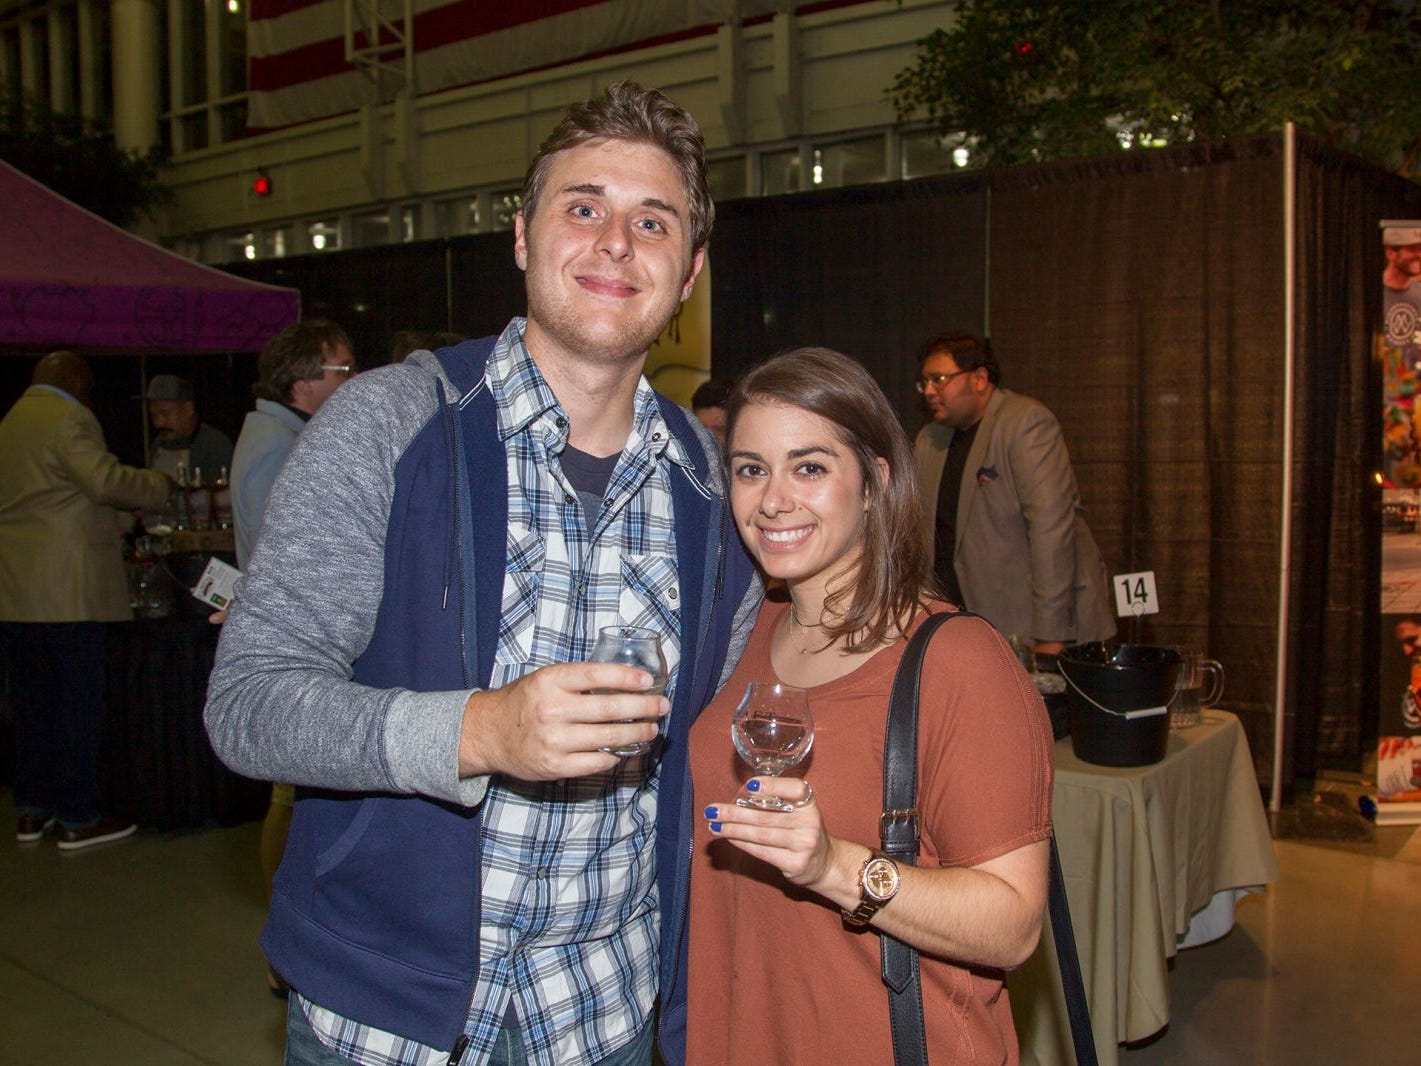 Bob and Barbara. Jersey City Craft Distillery Fest at the Harborside Atrium featured more than 100 styles of spirits. Guests had the chance to taste craft-distilled spirits from moonshine, rum, cognac, whiskey, vodka, gin, tequila and more. 09/08/2018